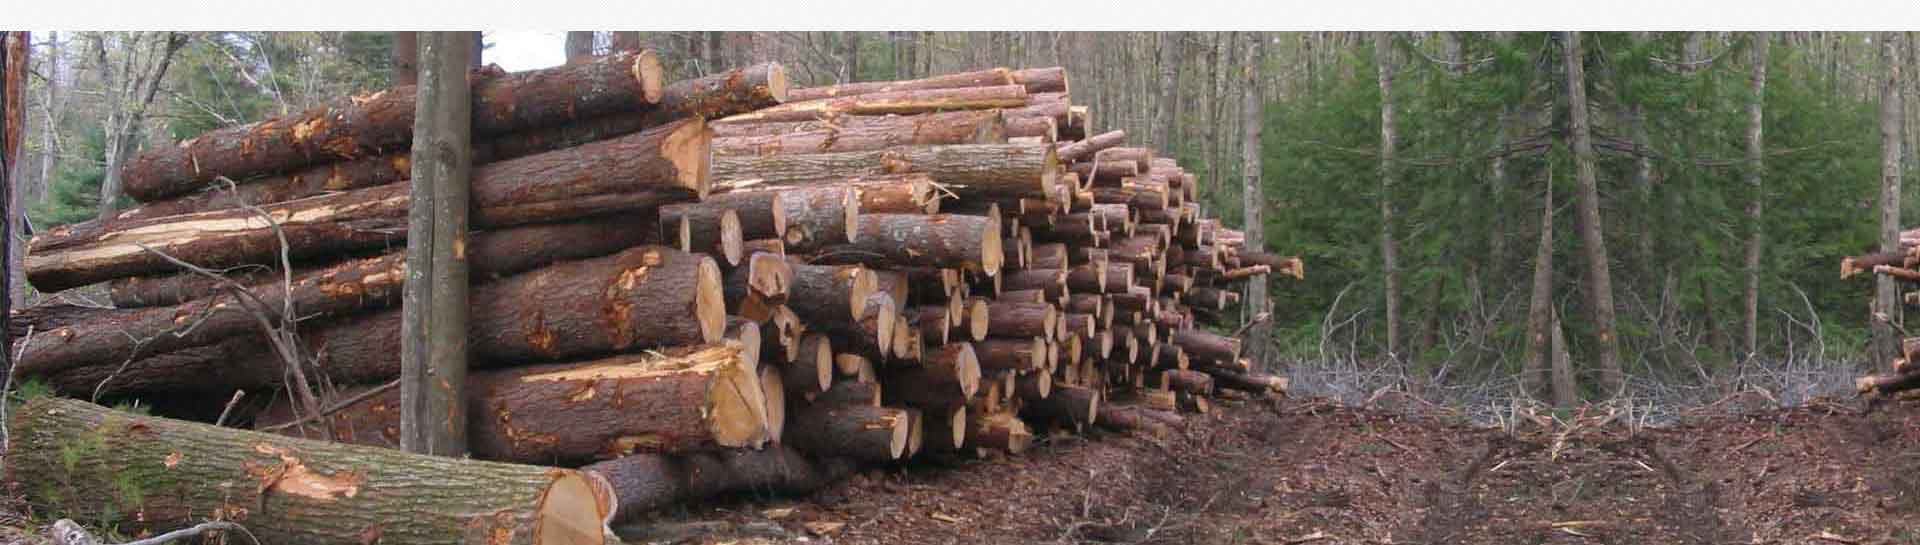 meranti logs at ASCO Enterprises